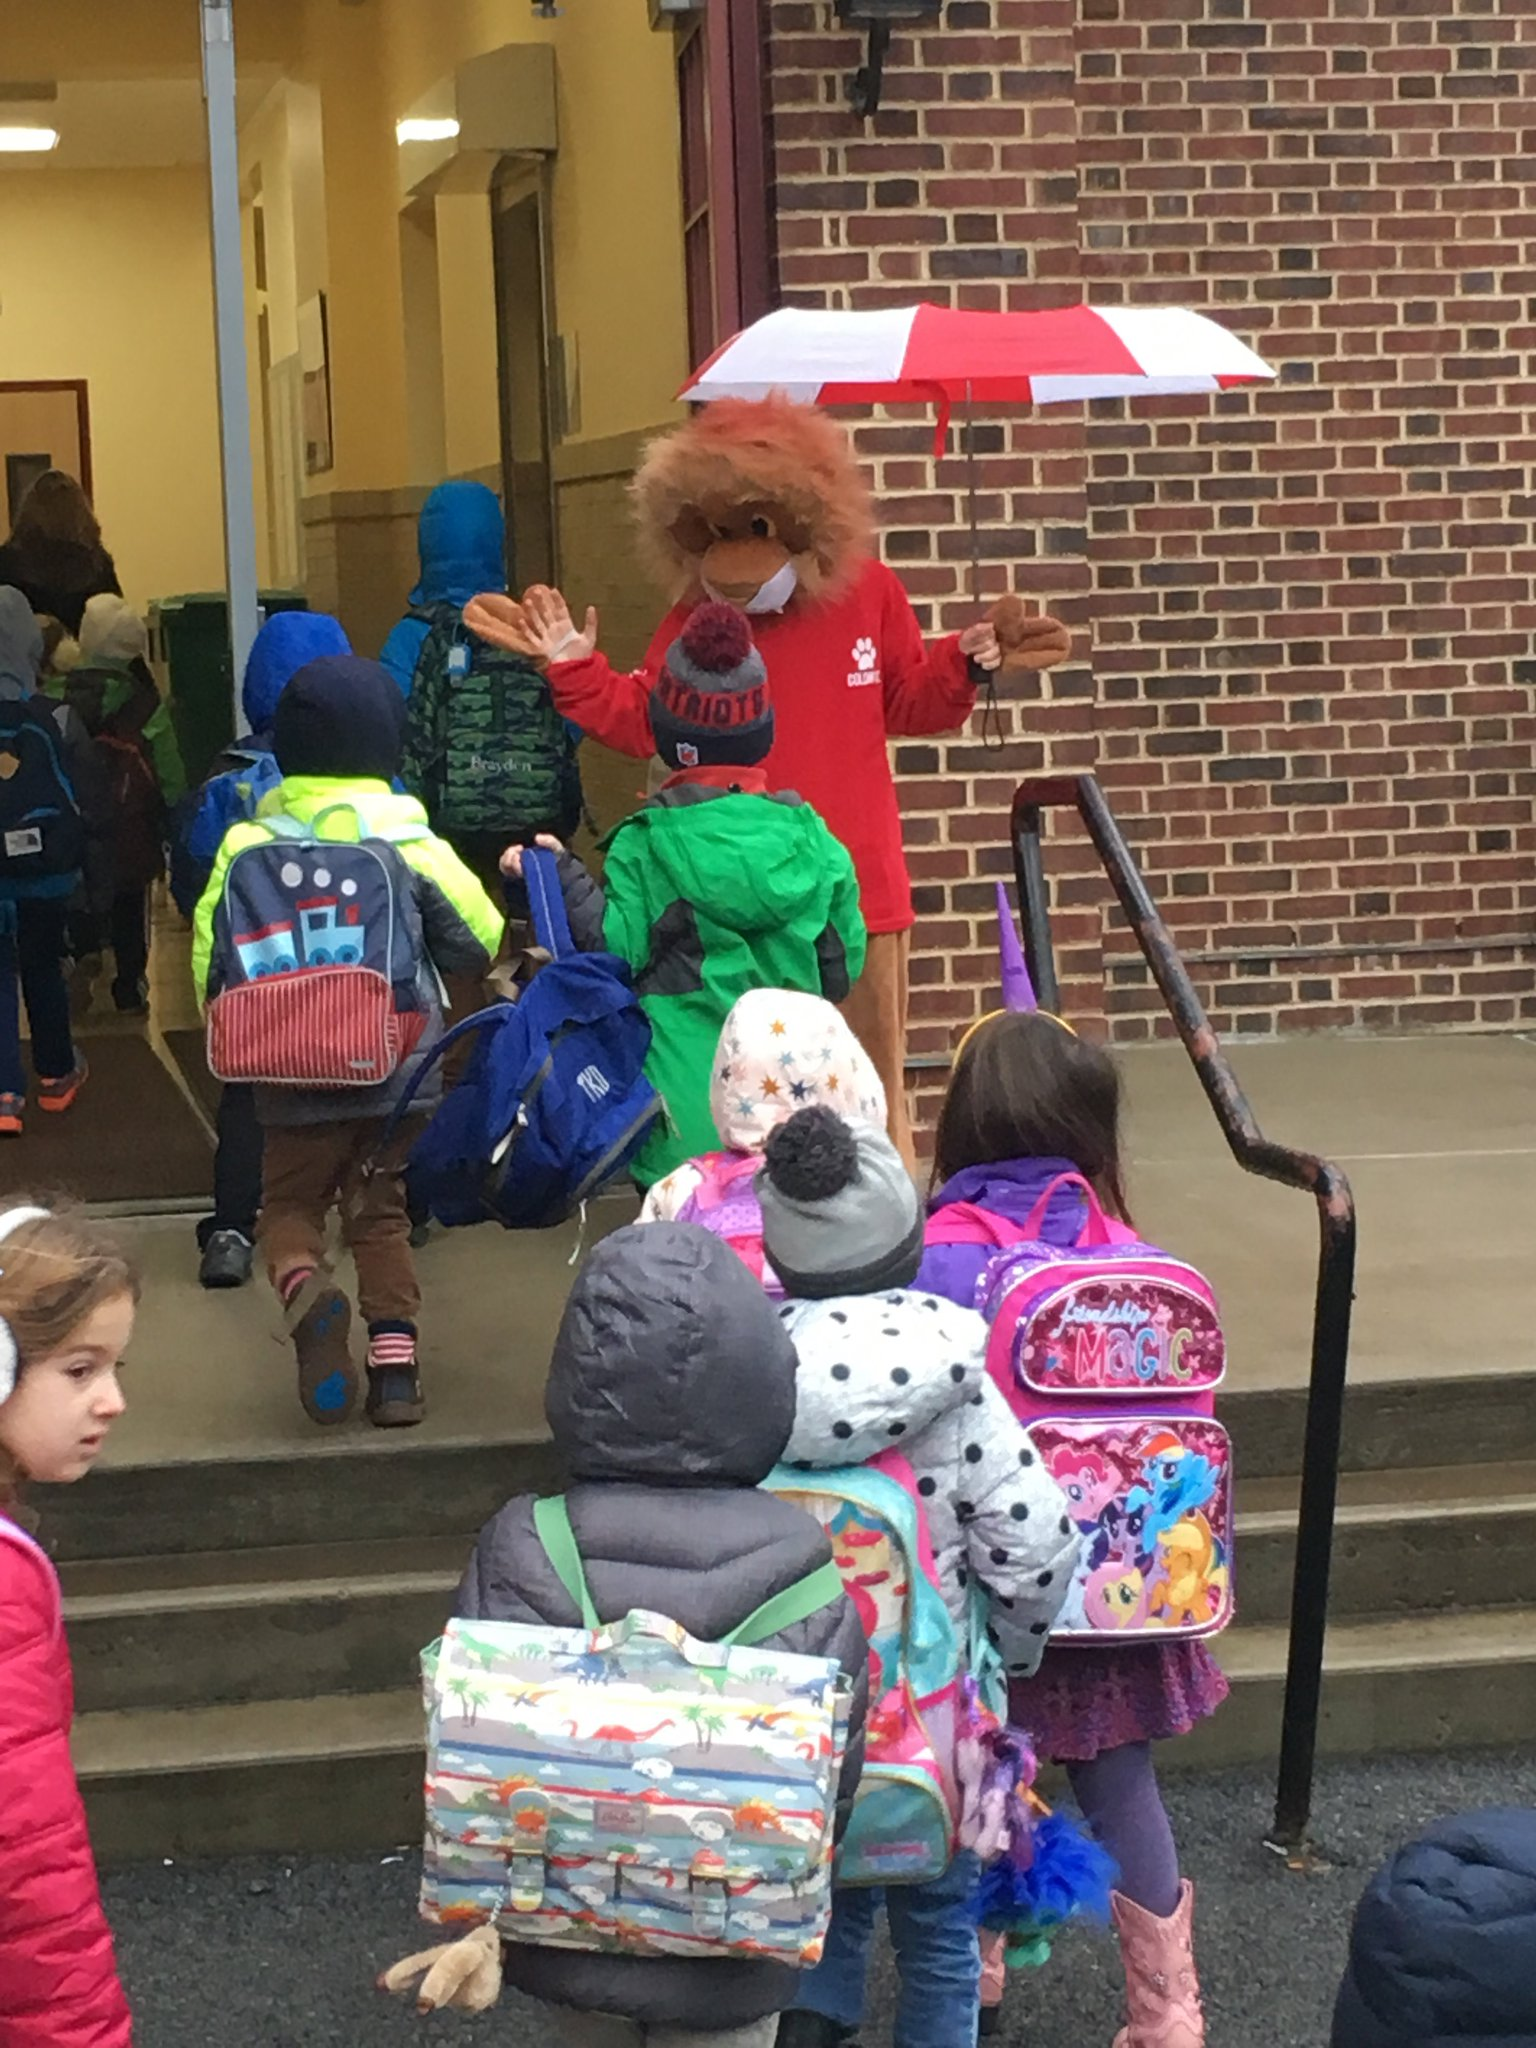 Colonial's School mascot has fun greeting students to the New Year! Happy 2017! @PeterGiarrizzo @DrStevenMGarcia https://t.co/fgprNUzqIj